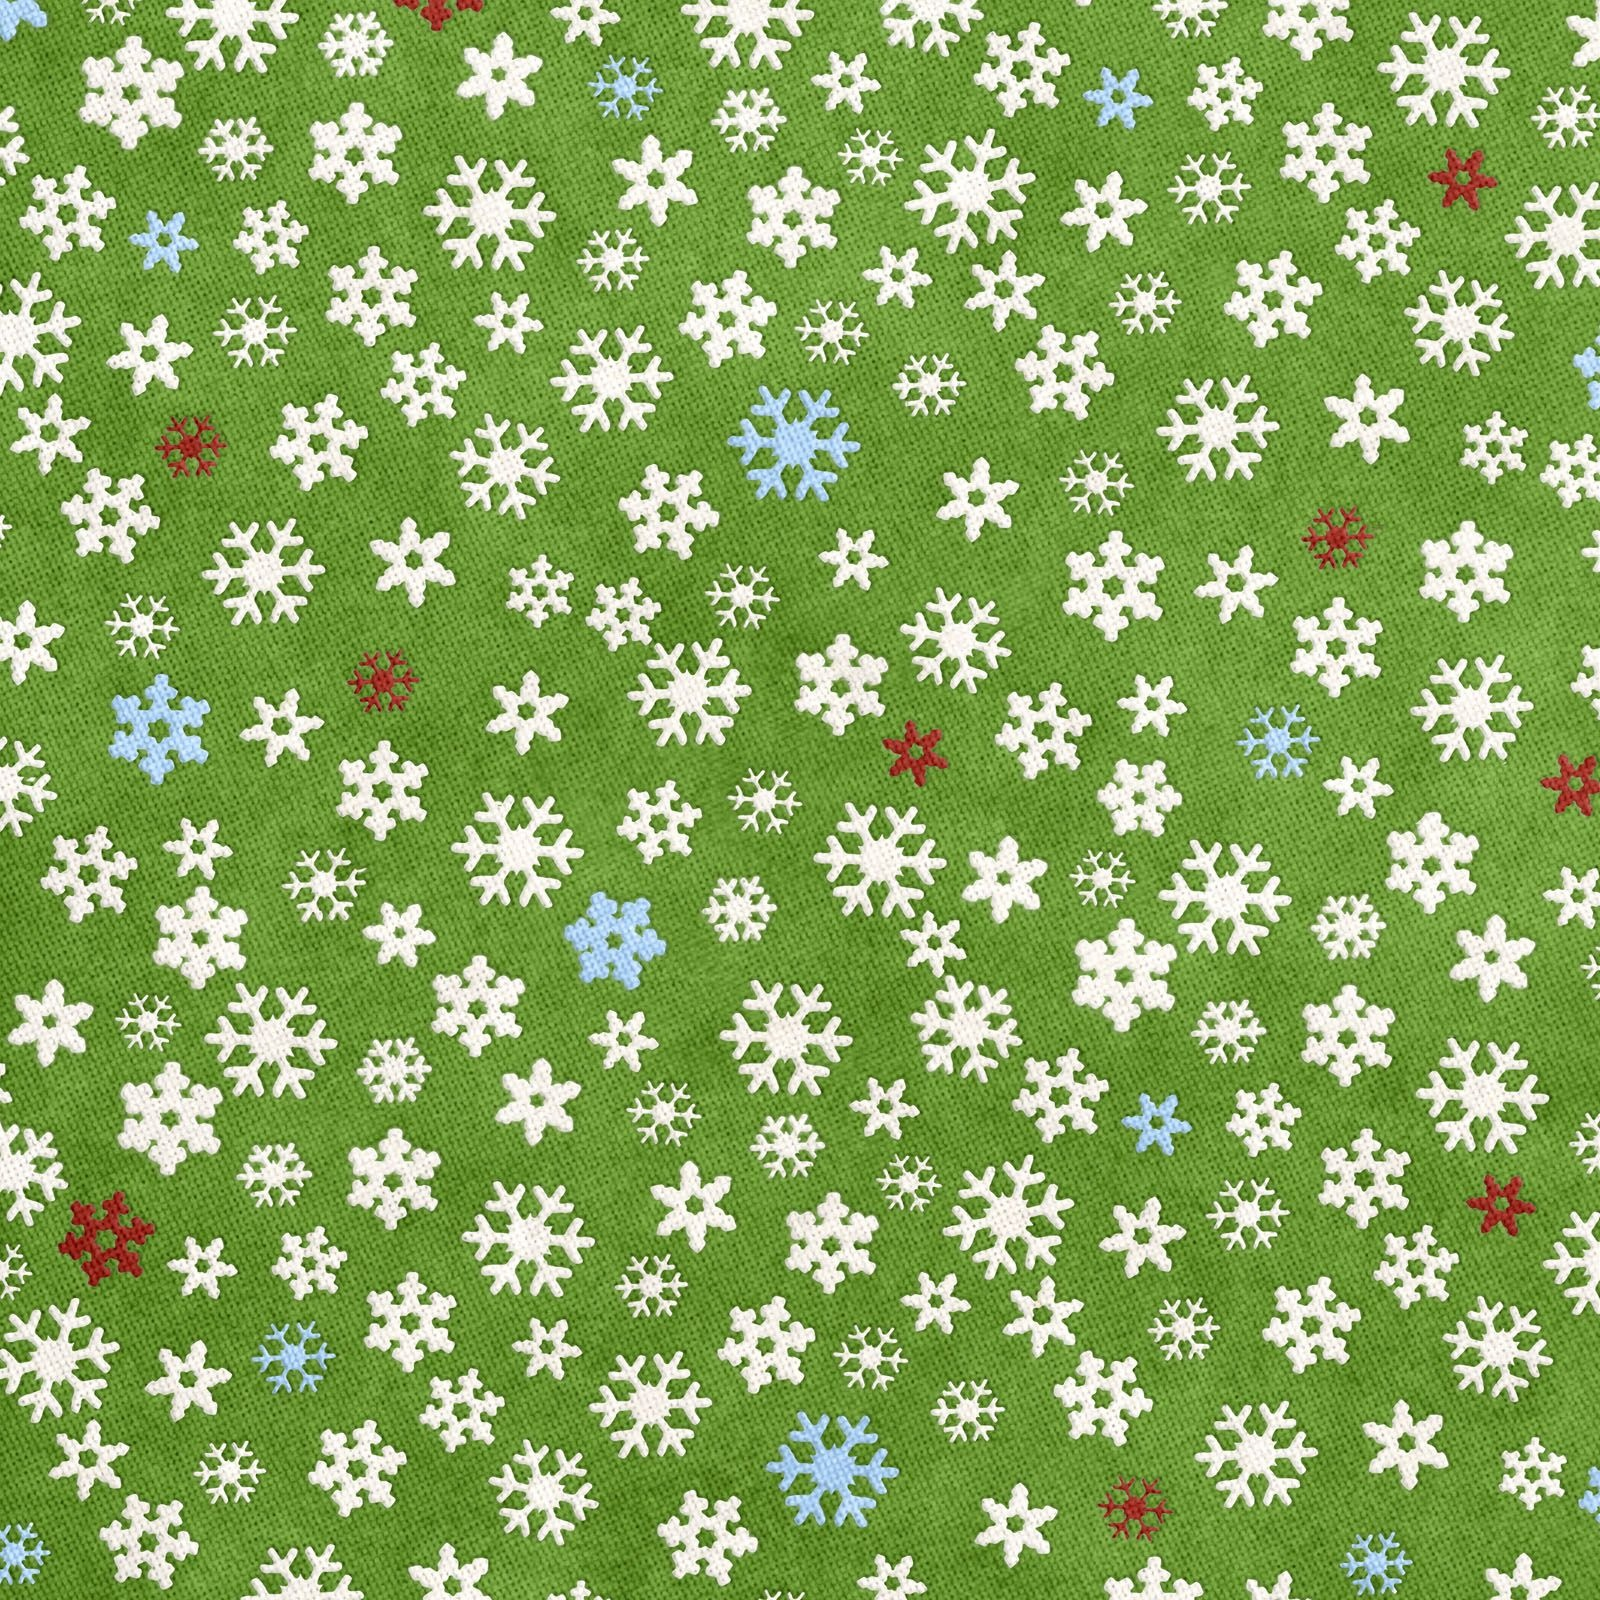 Free Printable Christmas Gift Wrapping Paper - Snowflakes On Green - Free Printable Scrapbook Paper Christmas